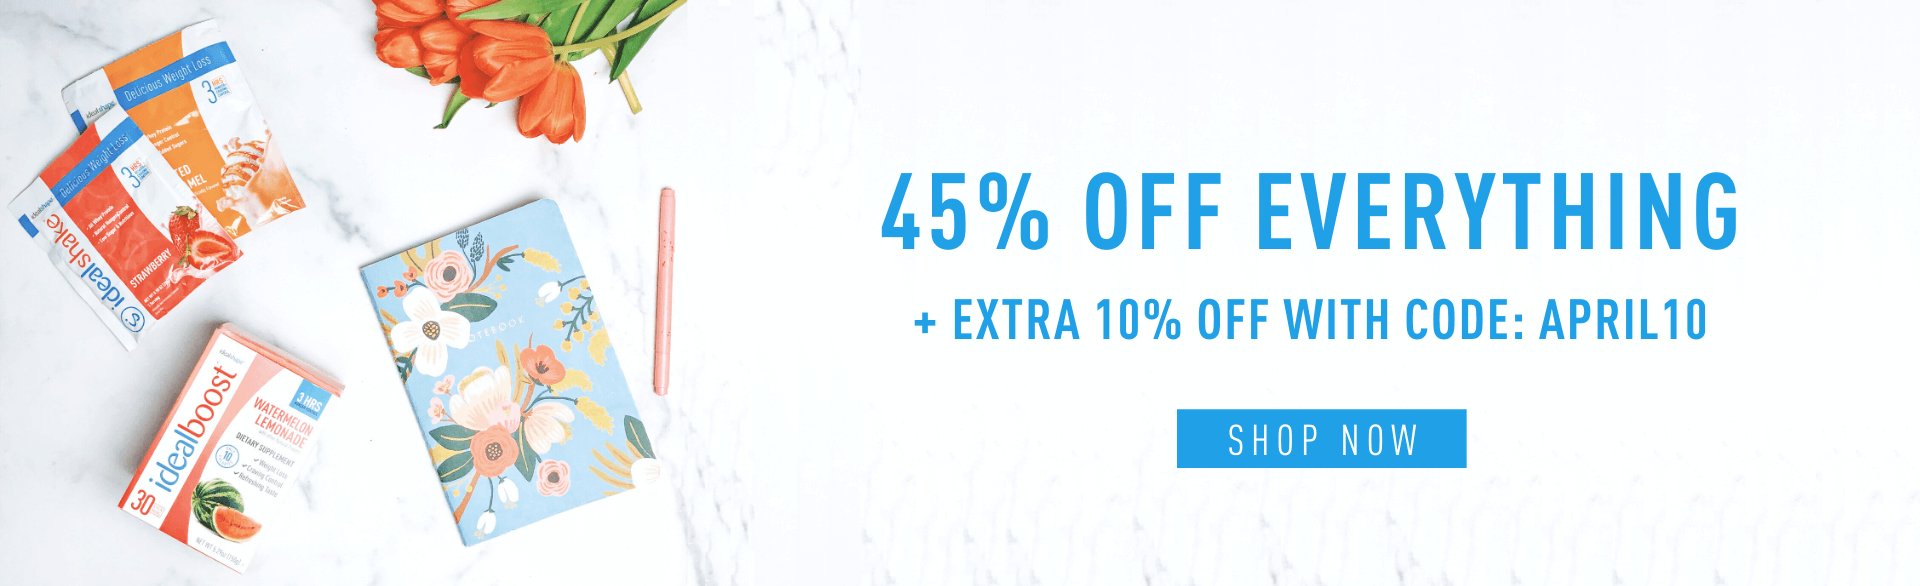 45% Off Everything + Extra 10% Off